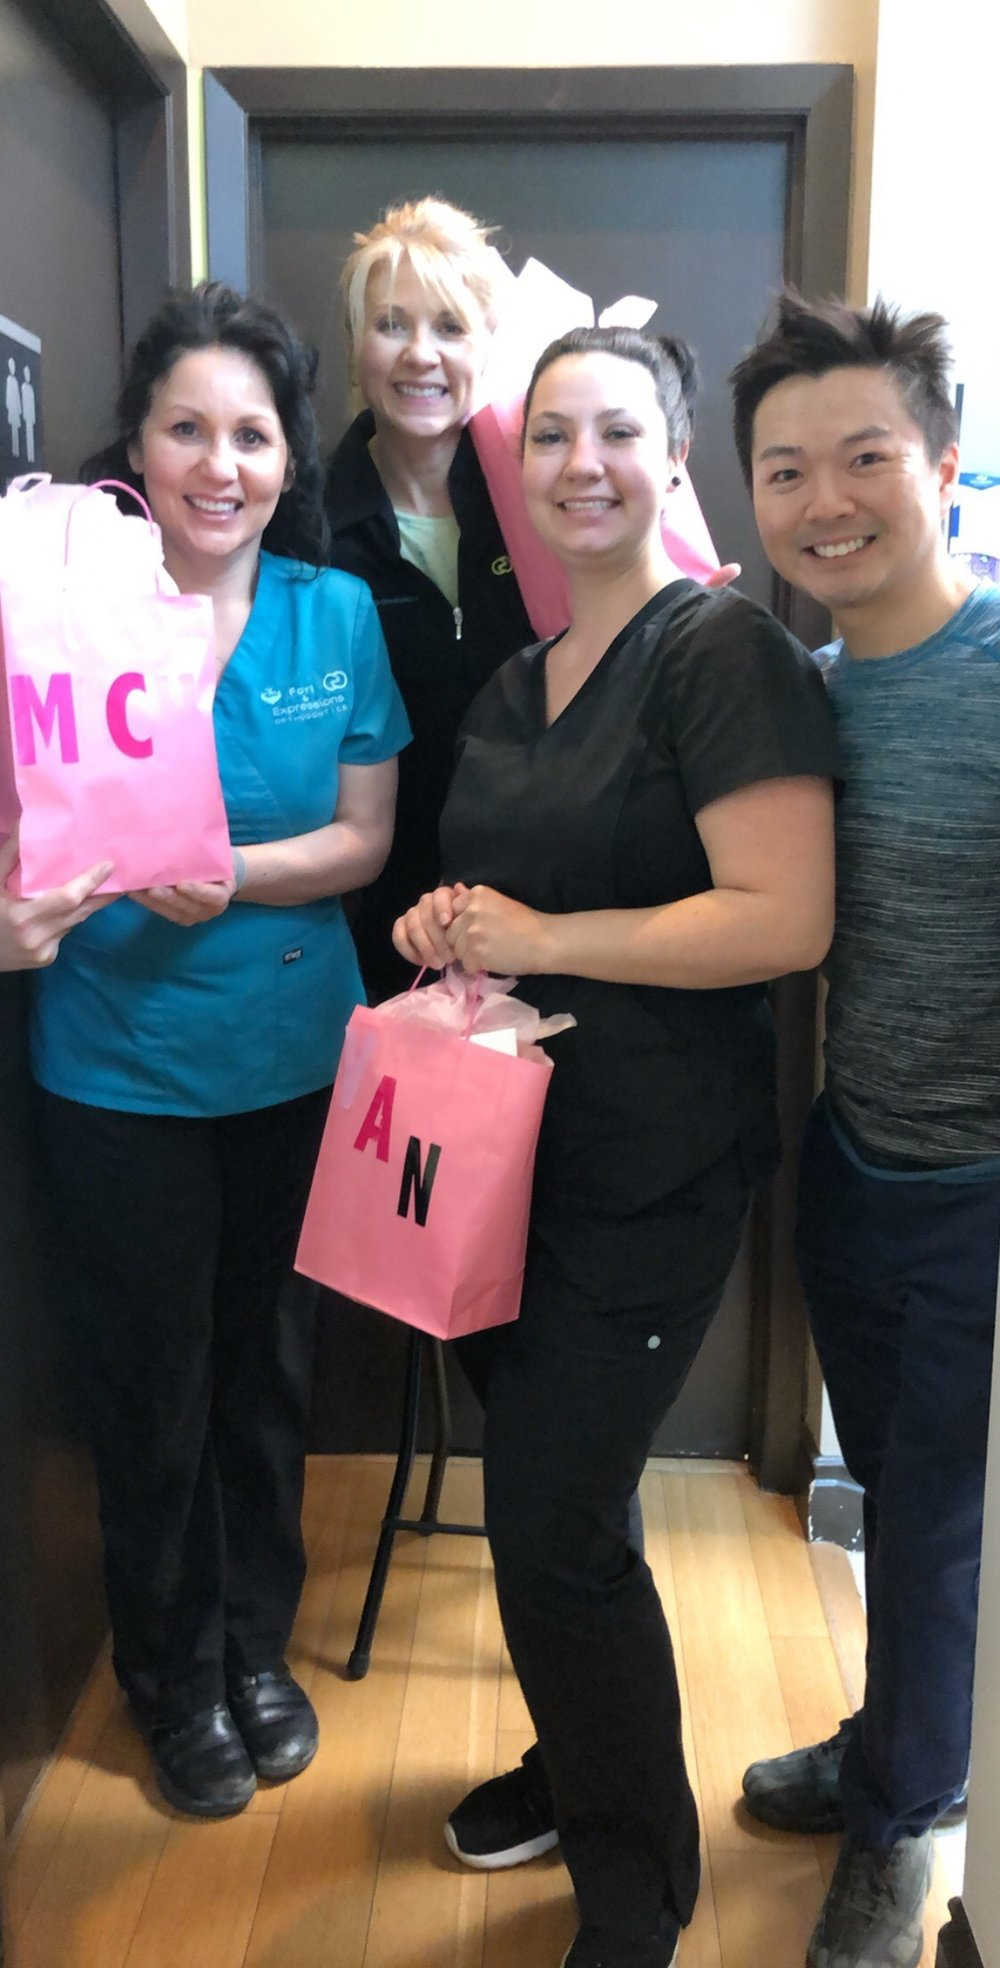 Left to right –> Michelle, Jo, and Vanessa. Michelle's the team joker, Jo keeps us moving (she could lift all us over her head!), and Vanessa is a gentle smile maker. Hats off to these 3 ladies who love orthodontics and our patients!